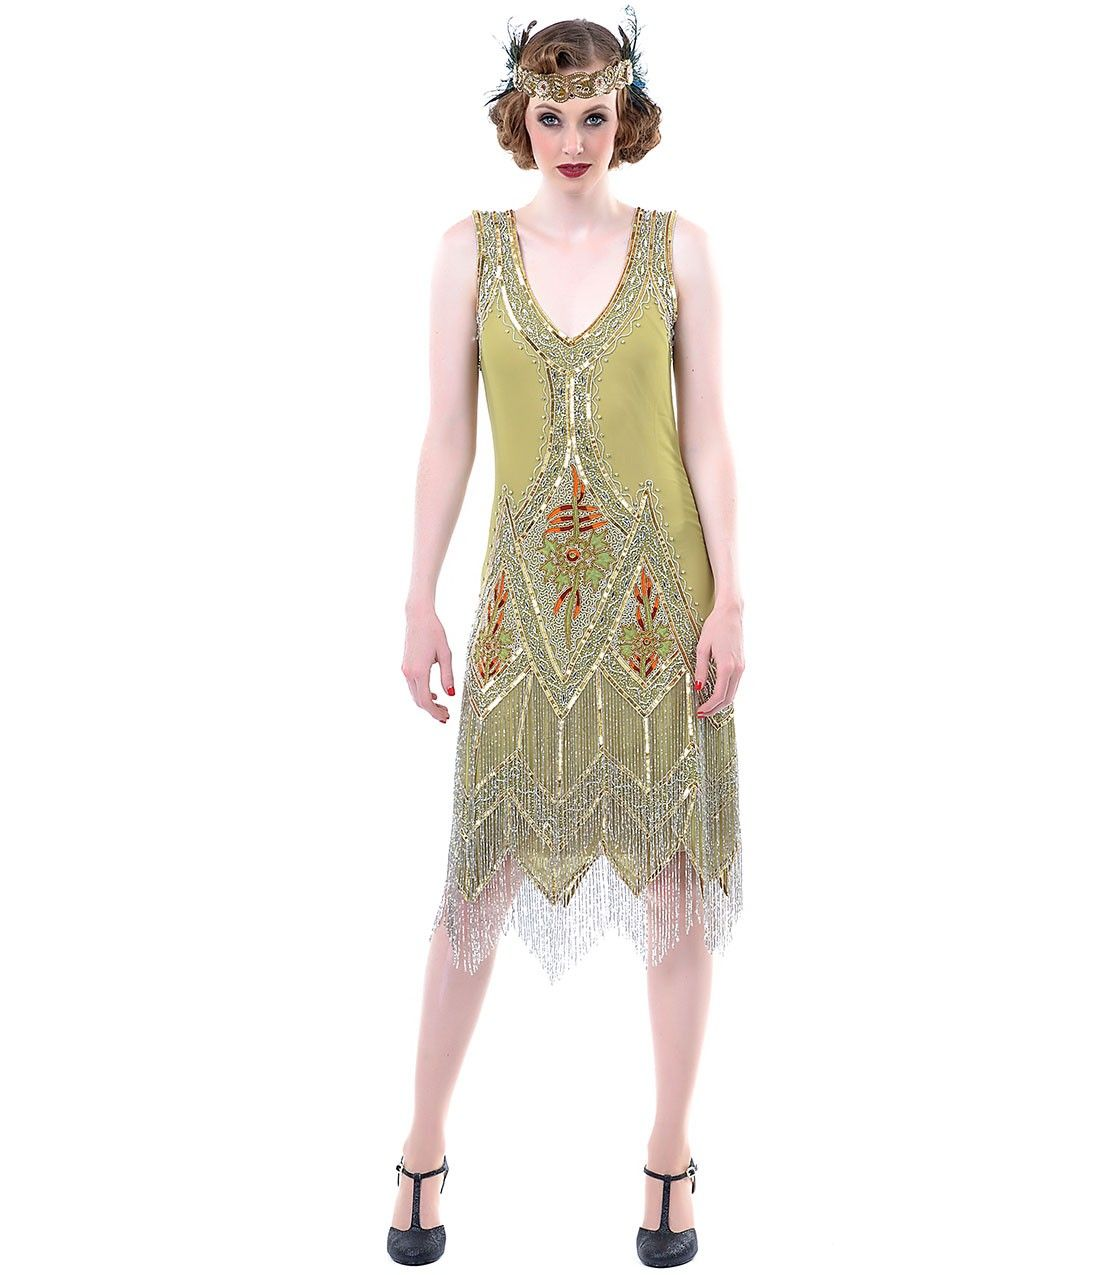 1920s Style Dresses for Girls